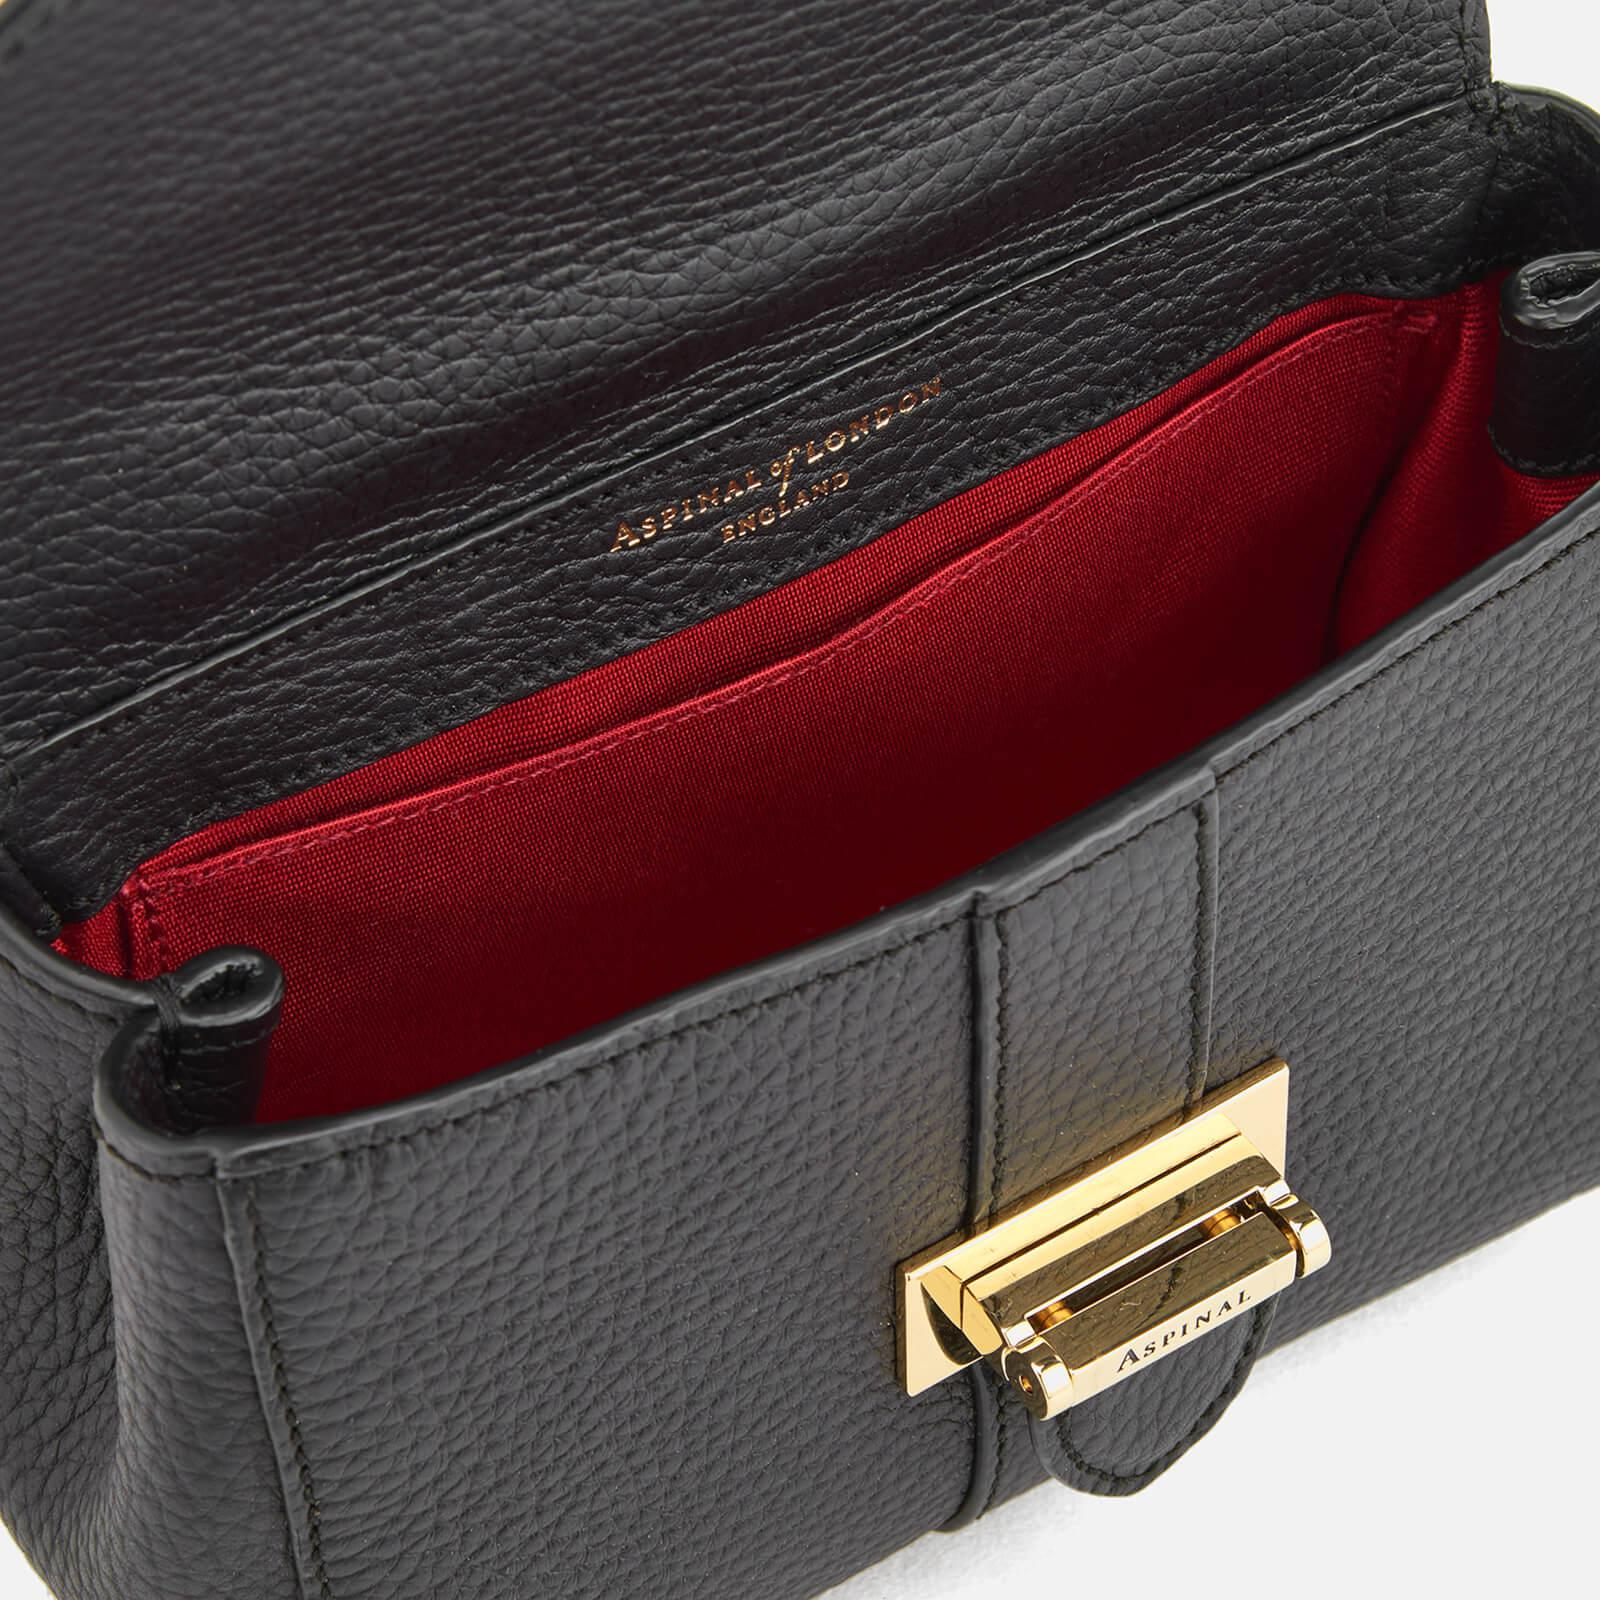 Aspinal of London Leather Lottie Micro Cross Body Bag